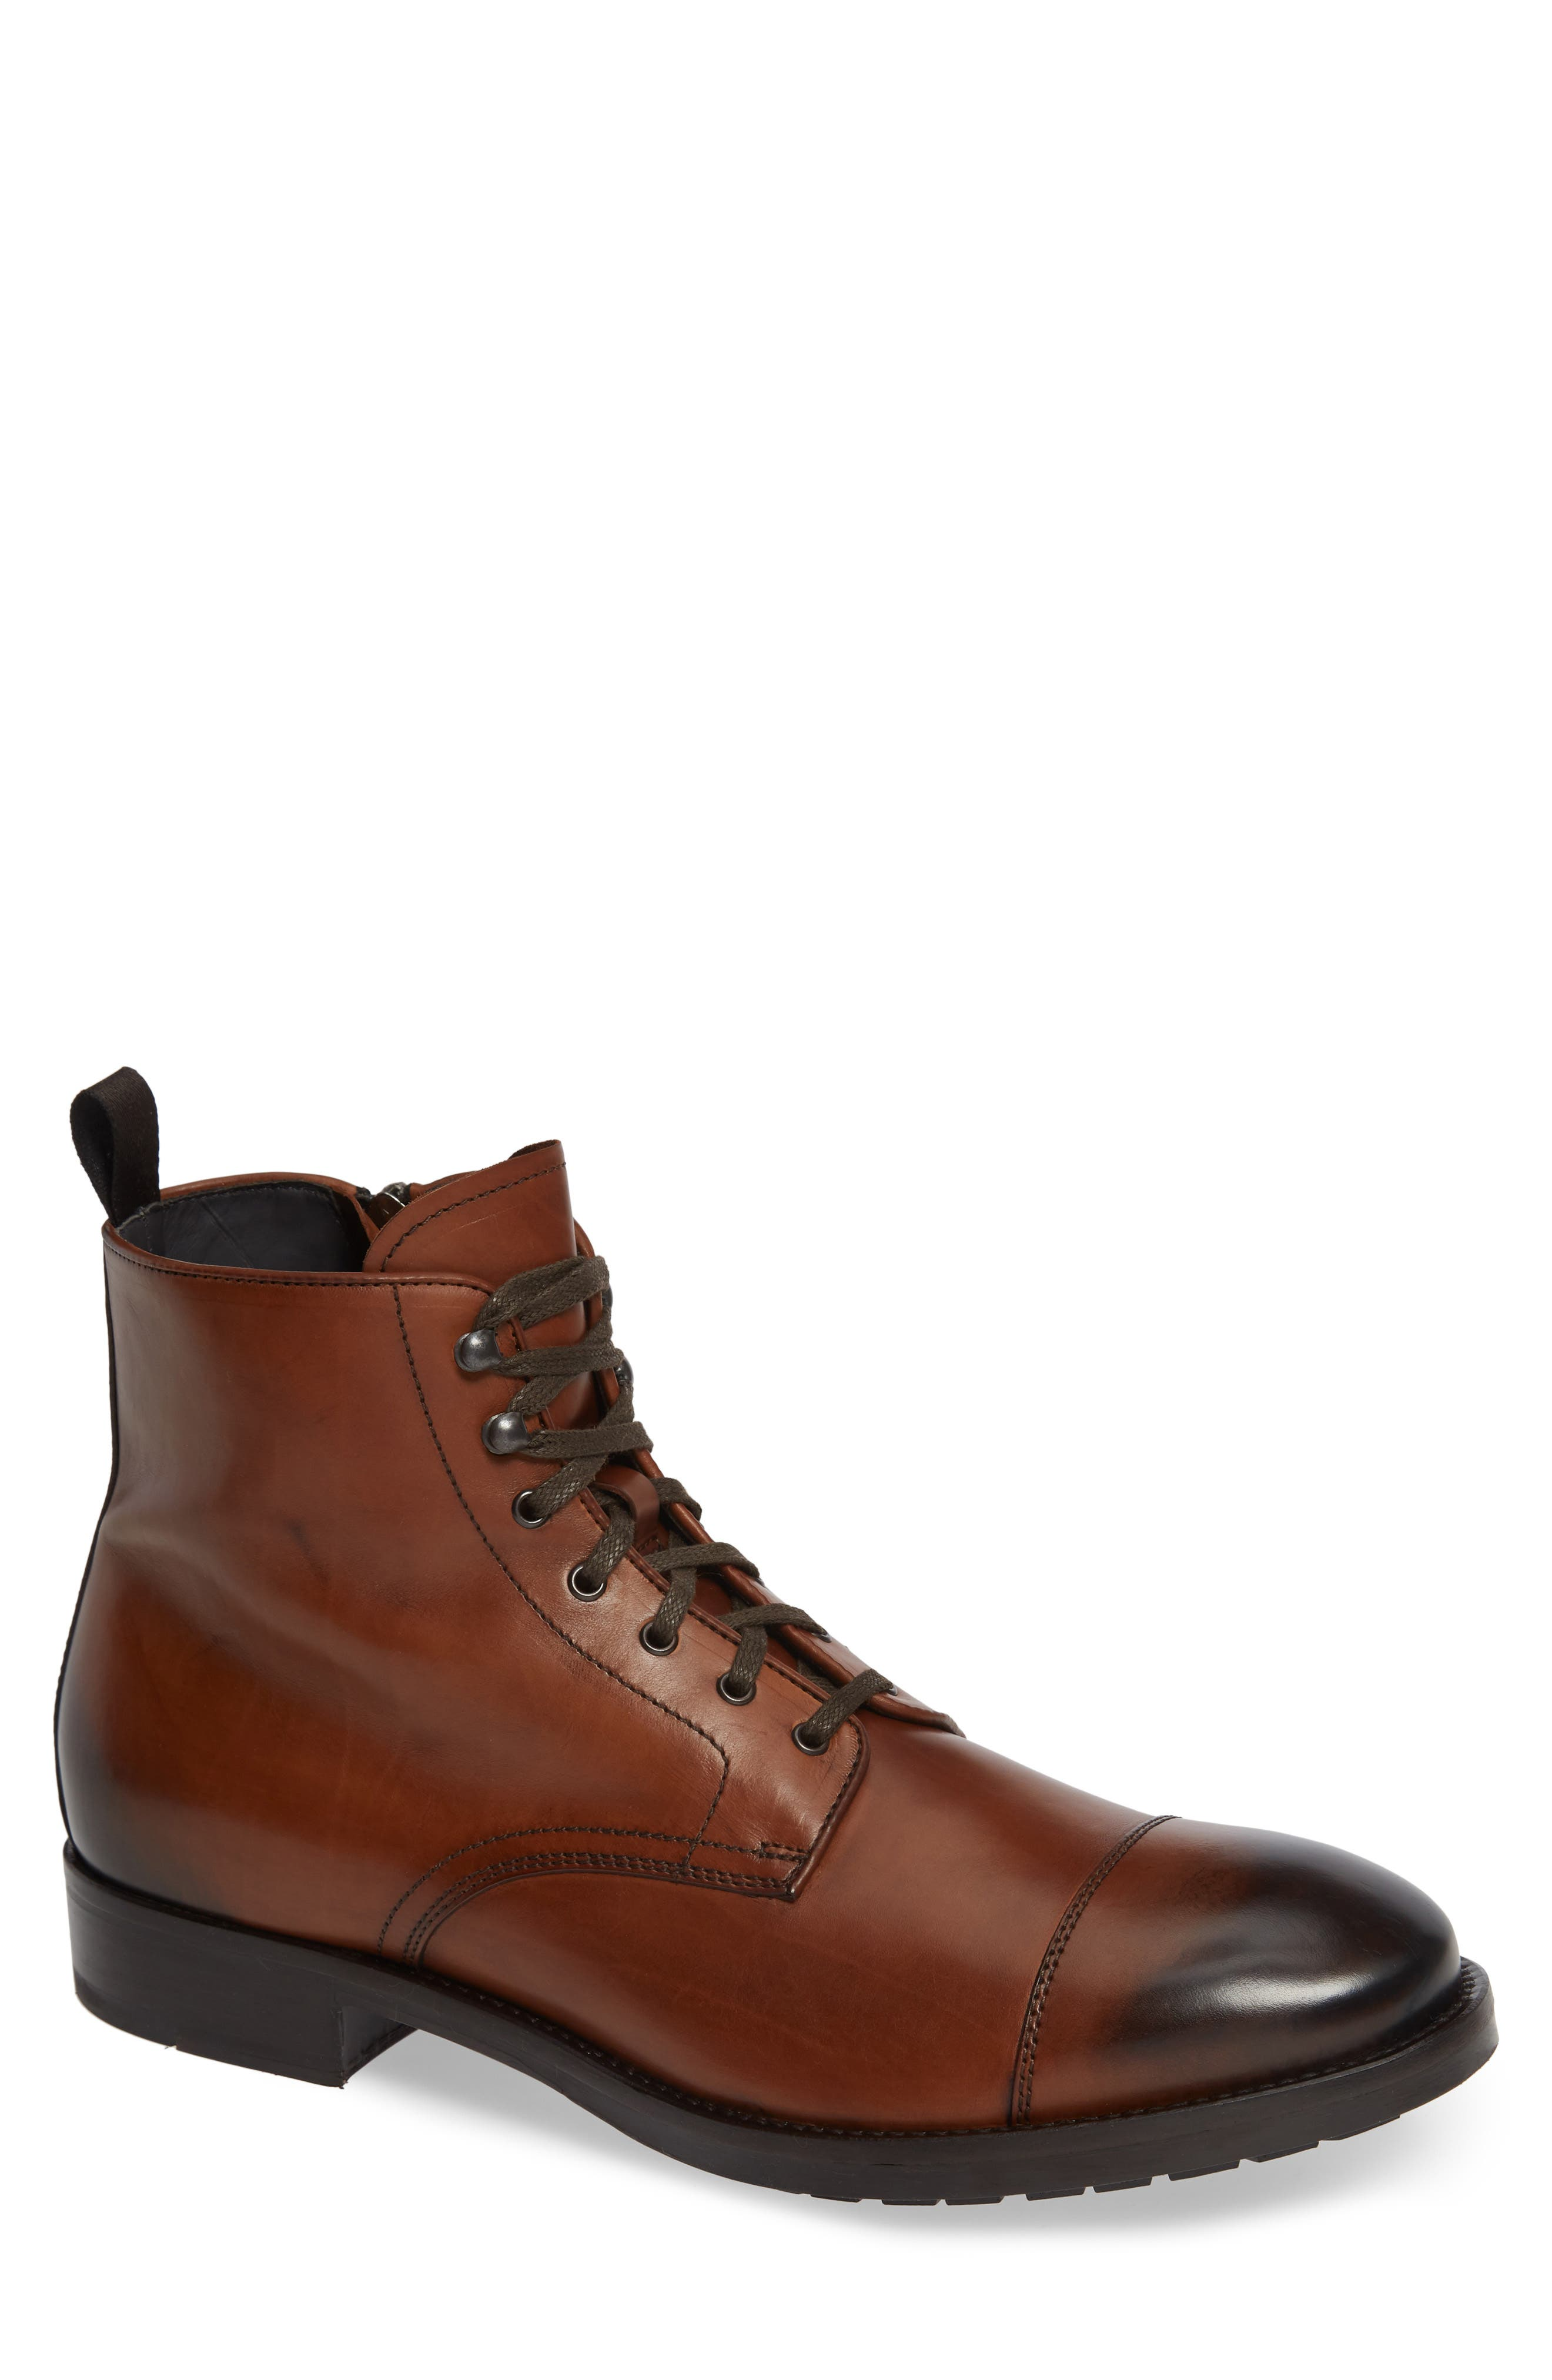 To Boot New York Concord Cap Toe Boot, Brown